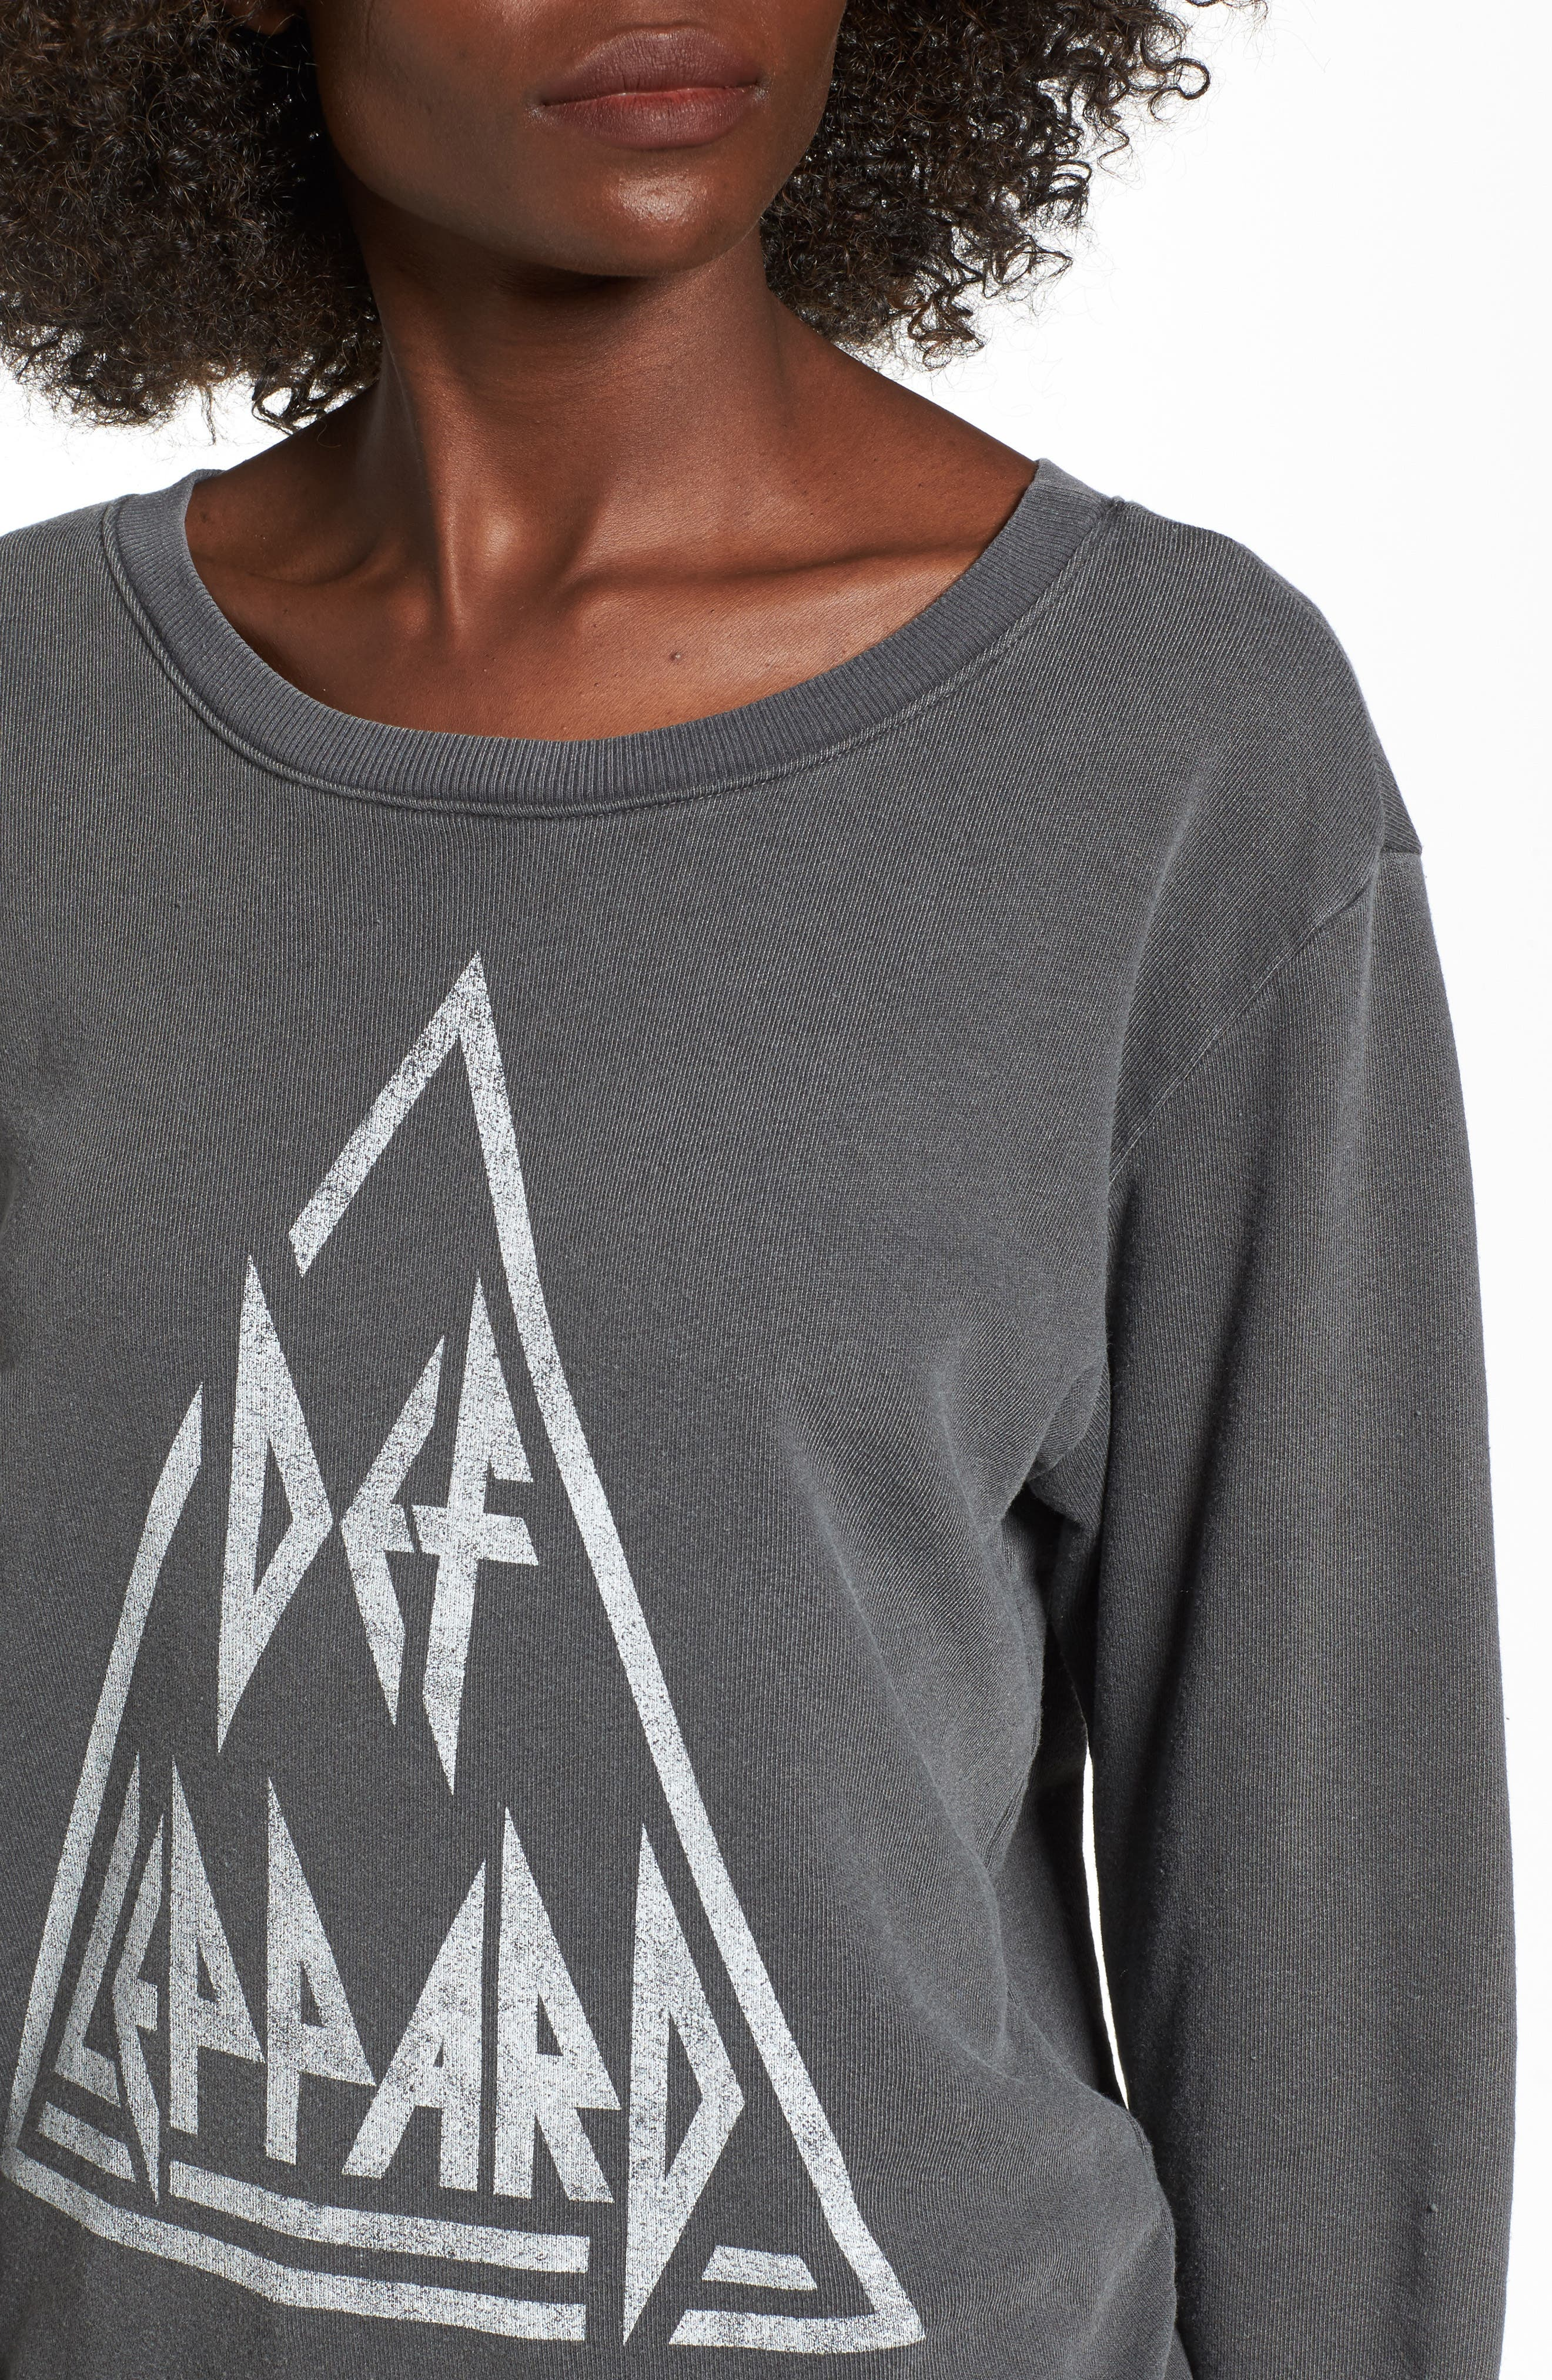 Def Leppard Sweatshirt,                             Alternate thumbnail 4, color,                             Faded Black